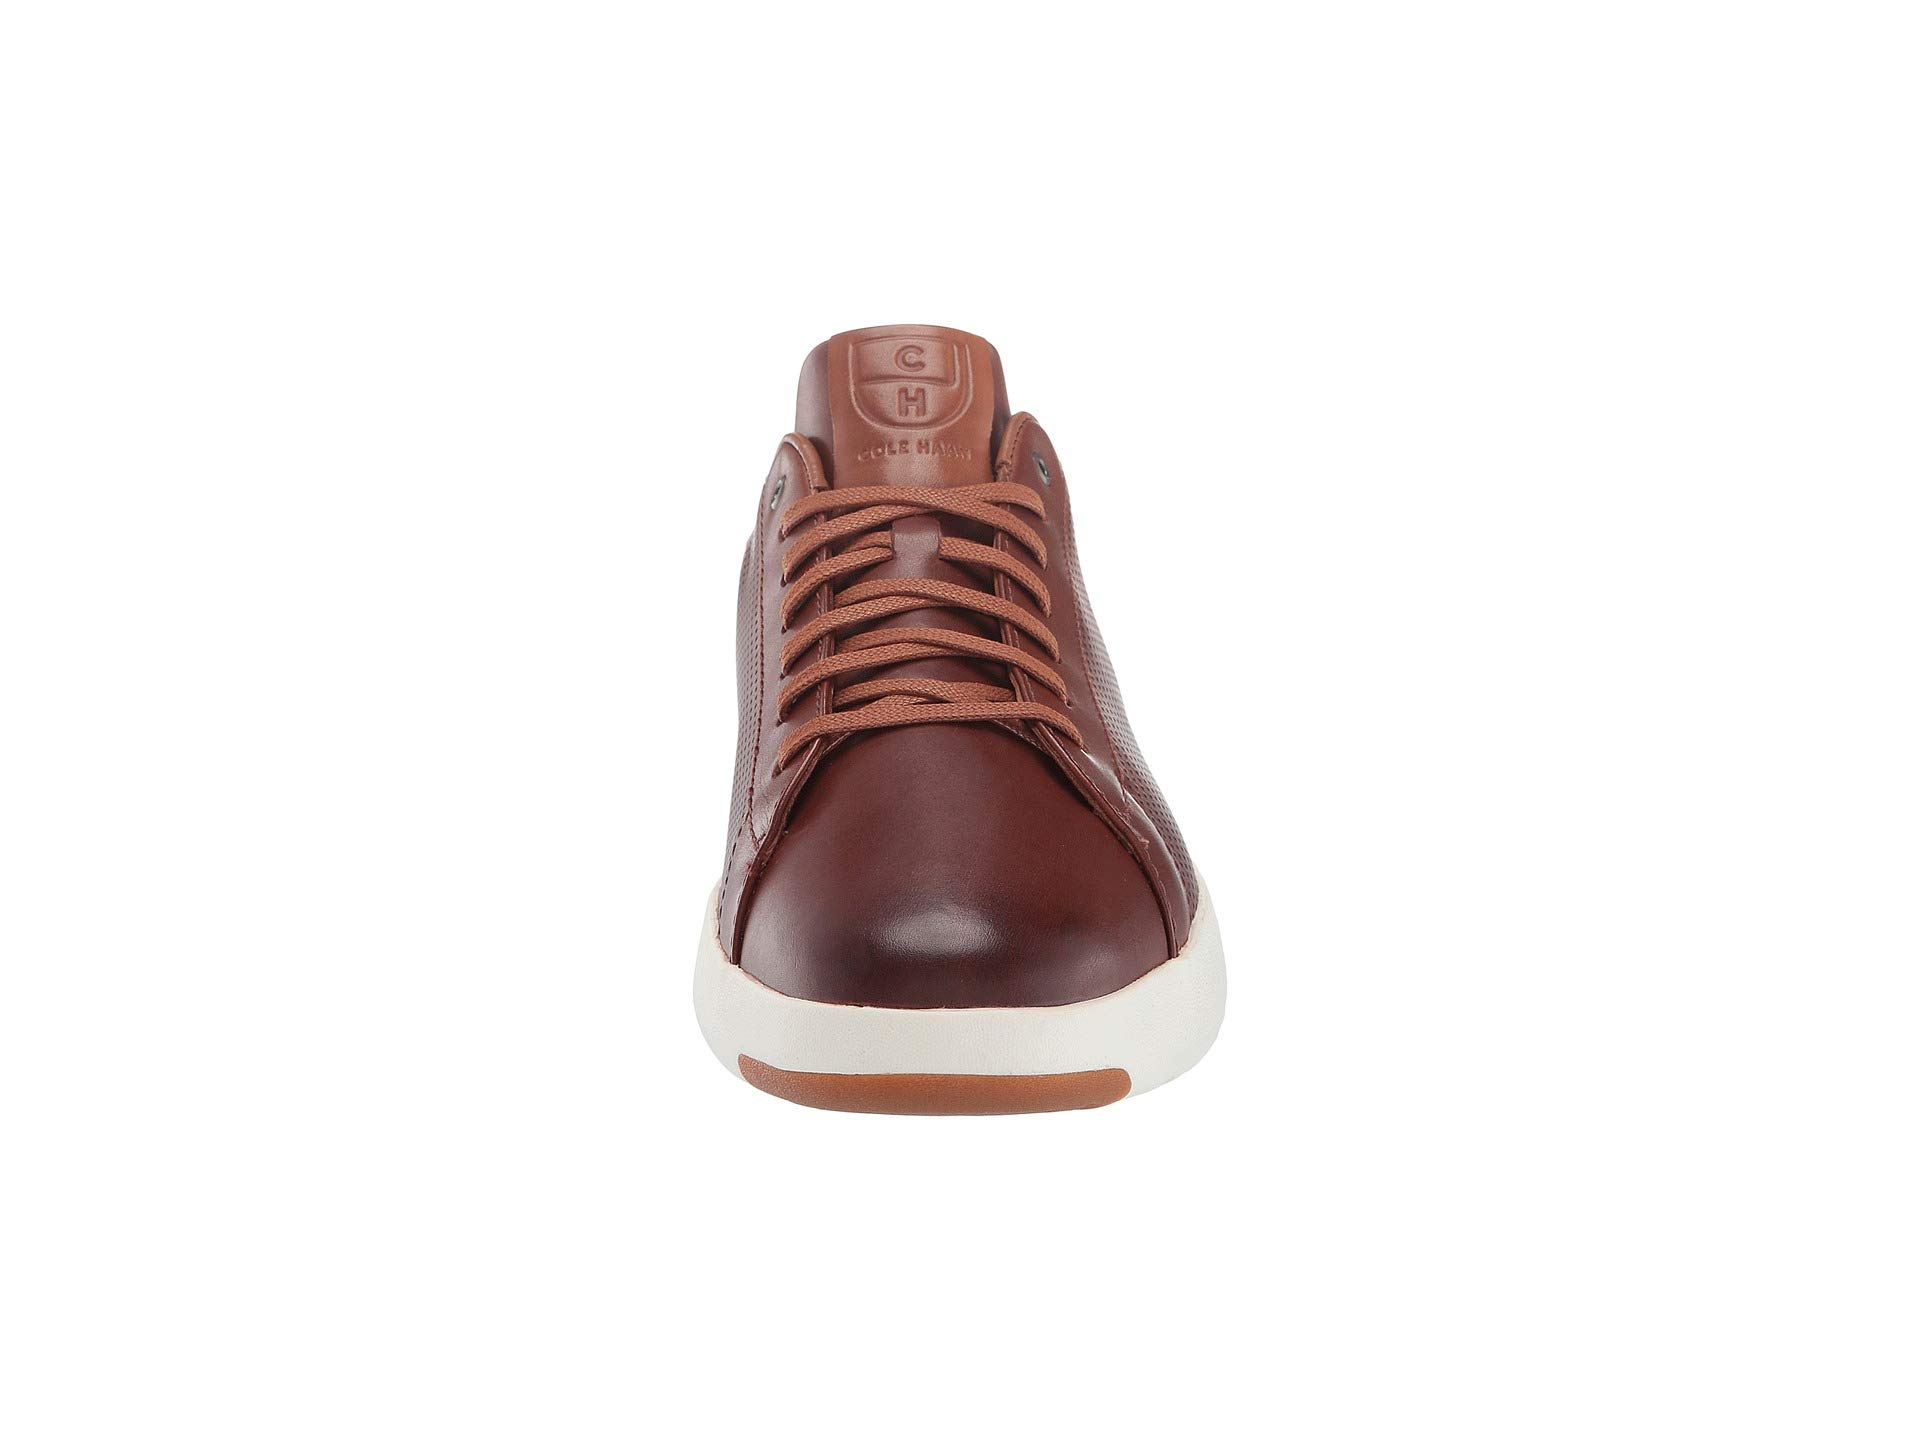 Cole Haan Mens Grandpro Tennis Sneaker 7 Woodbury Handstained Leather by Cole Haan (Image #5)